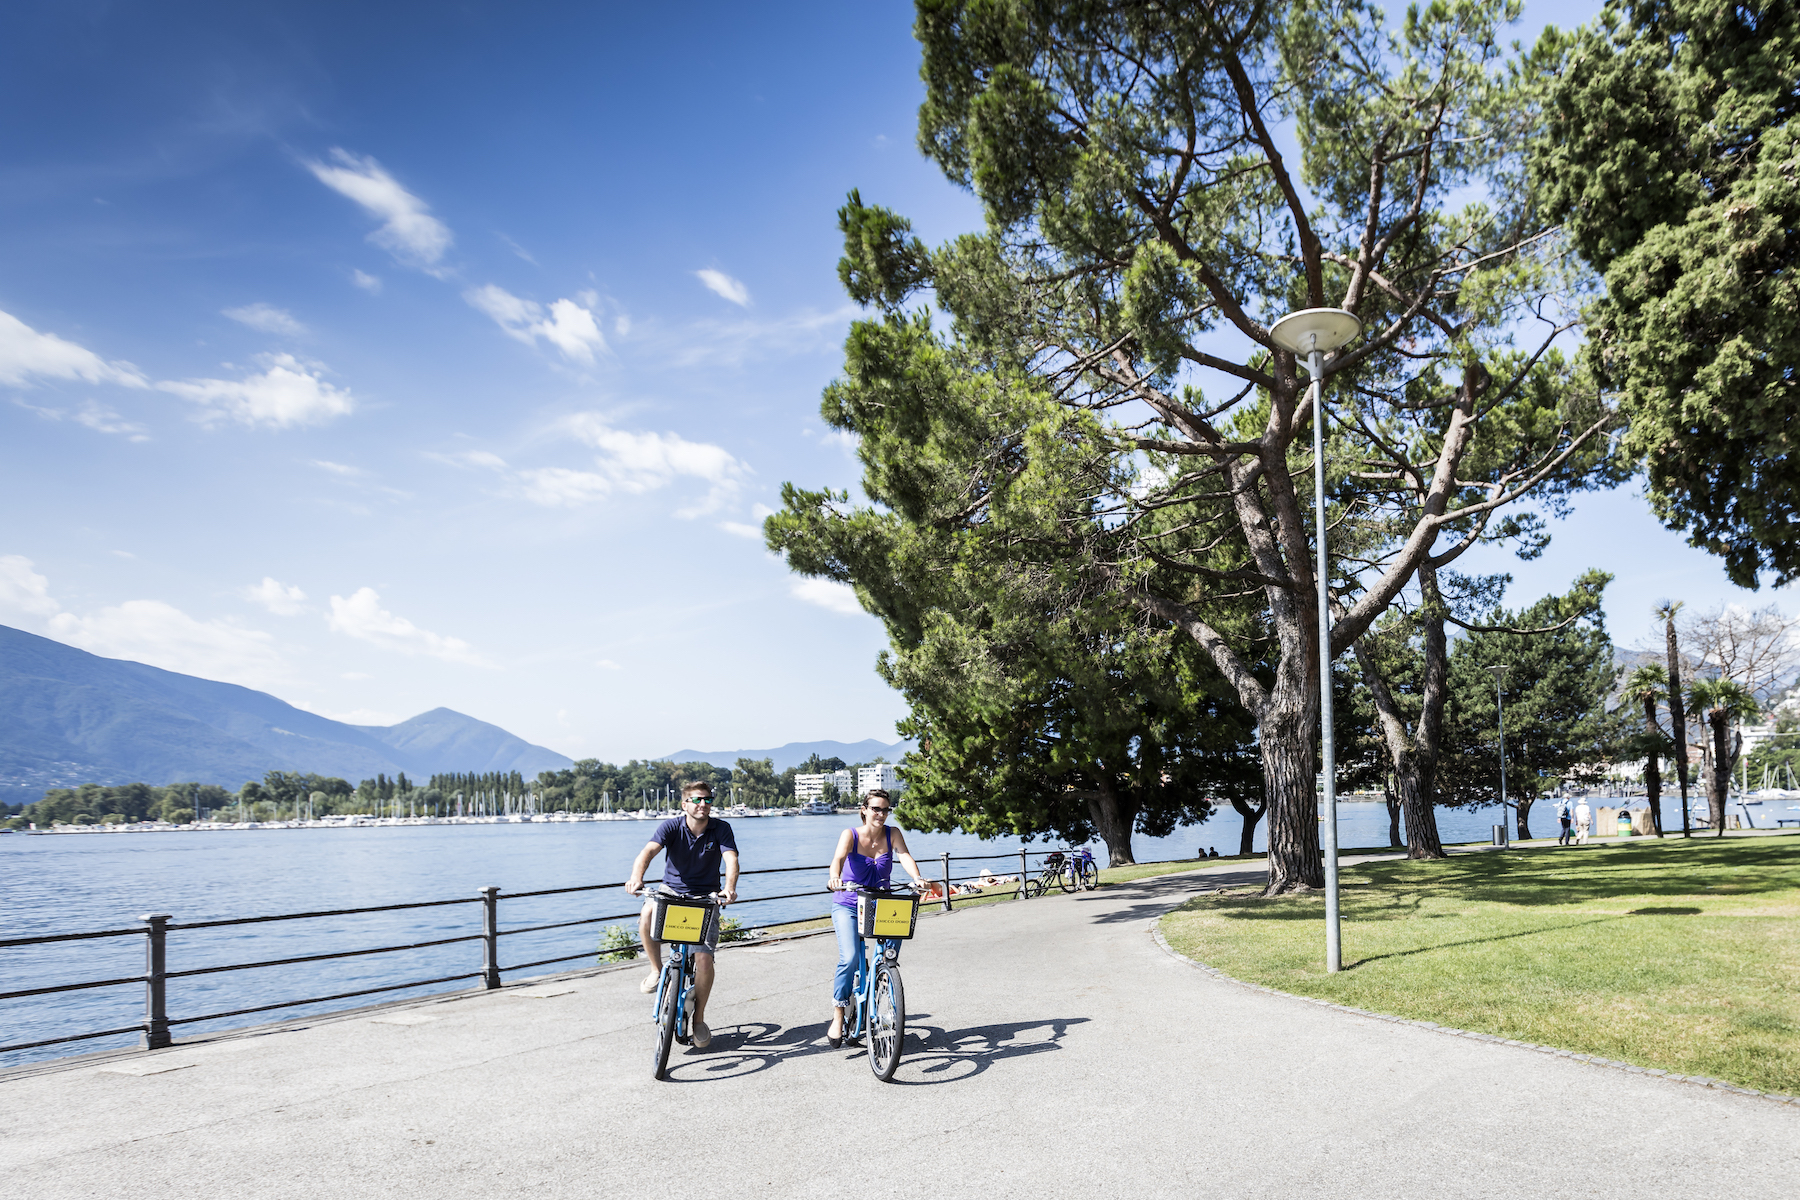 Ten amazing things to do in Ascona-Locarno this spring